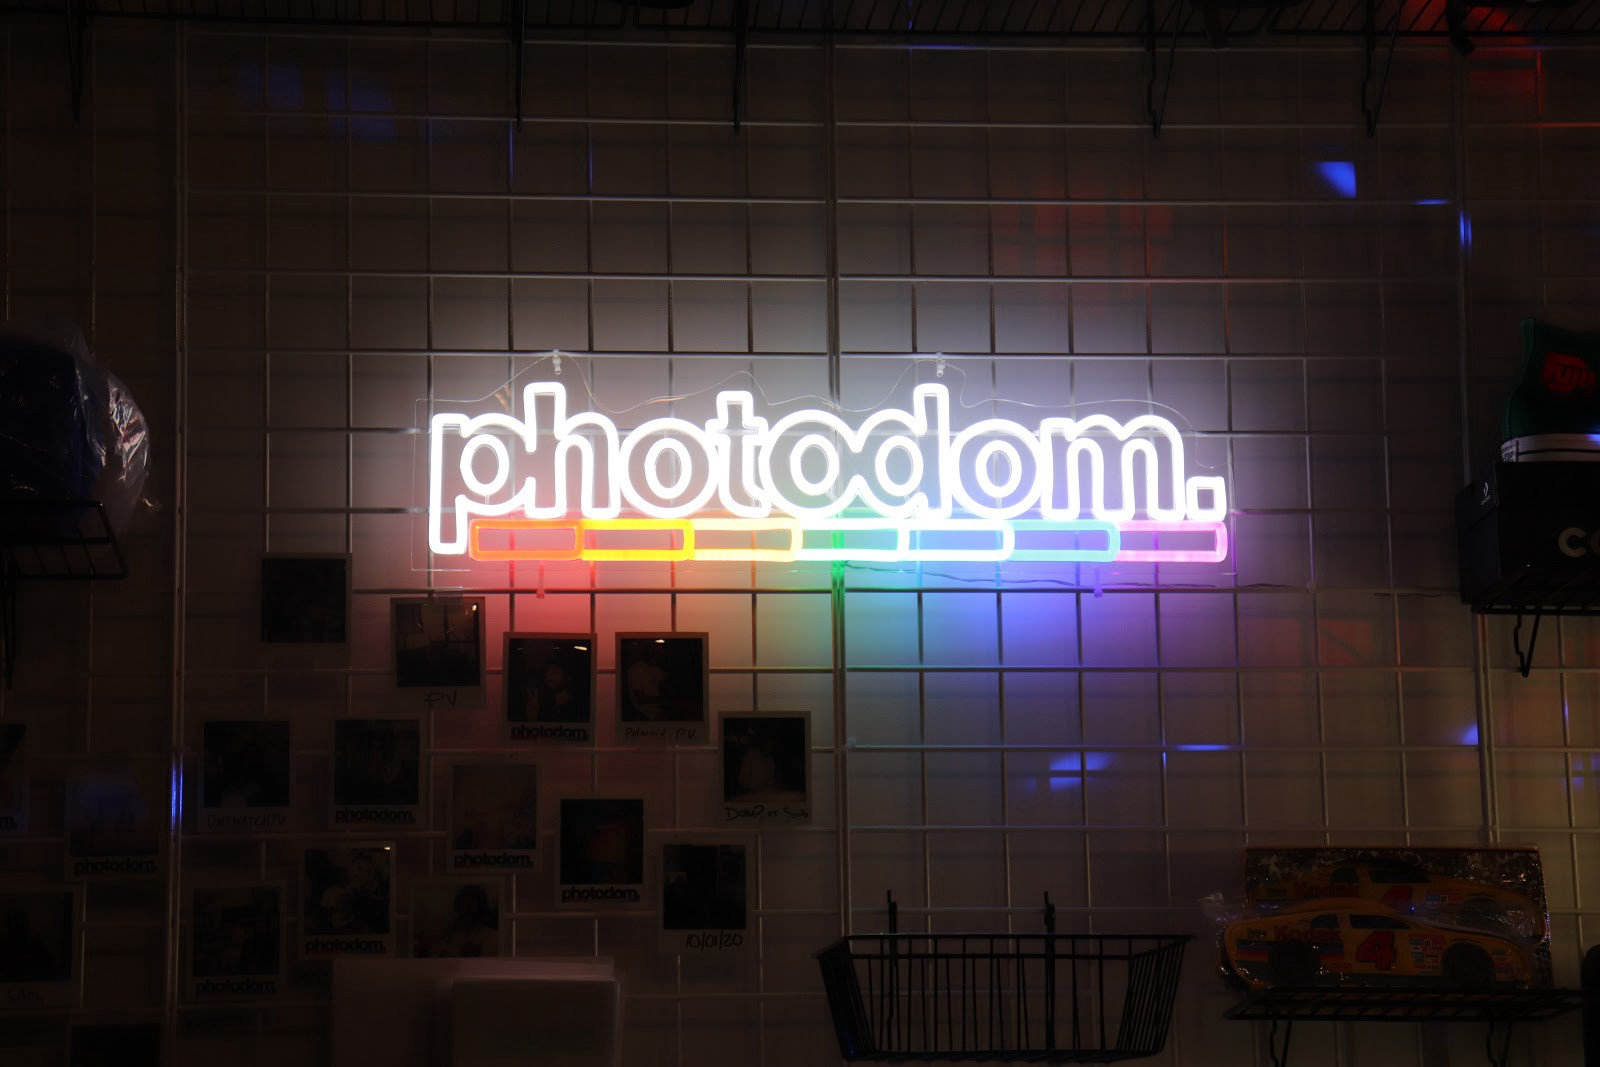 A rainbow-colored neon signage of the Photodom logo